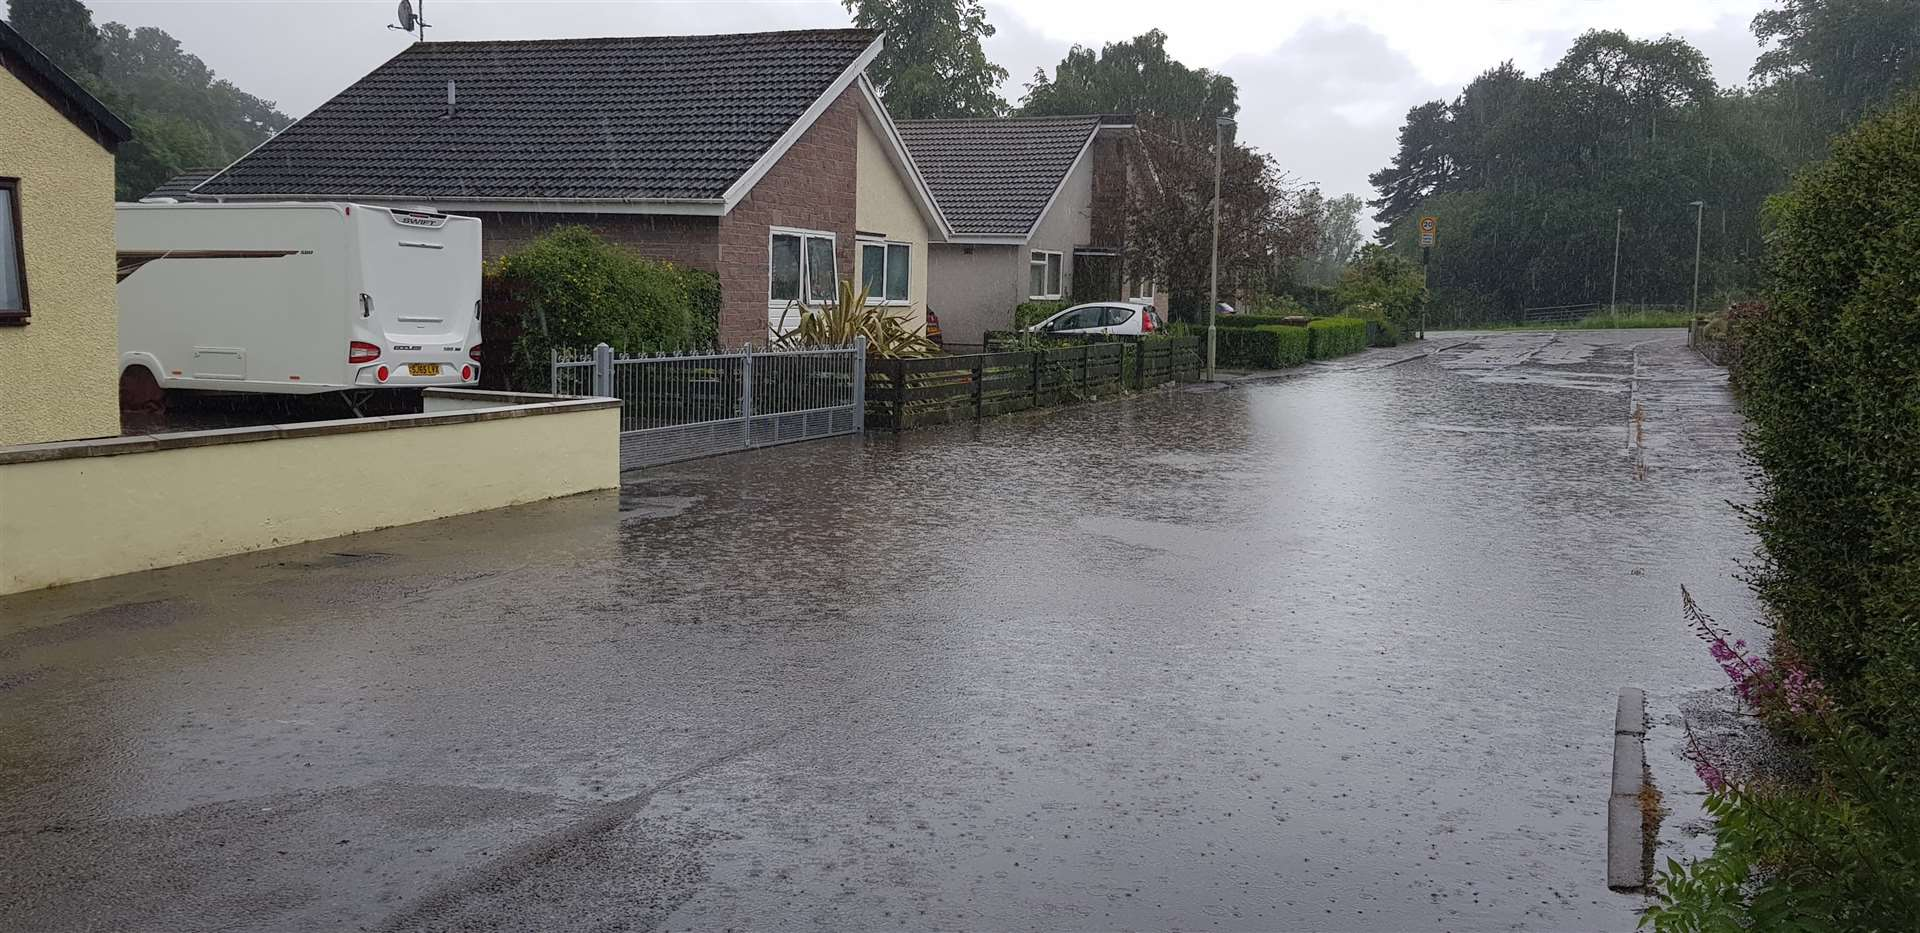 Flash floods have been a significant issue in Dingwall, prompting a pledge for action.